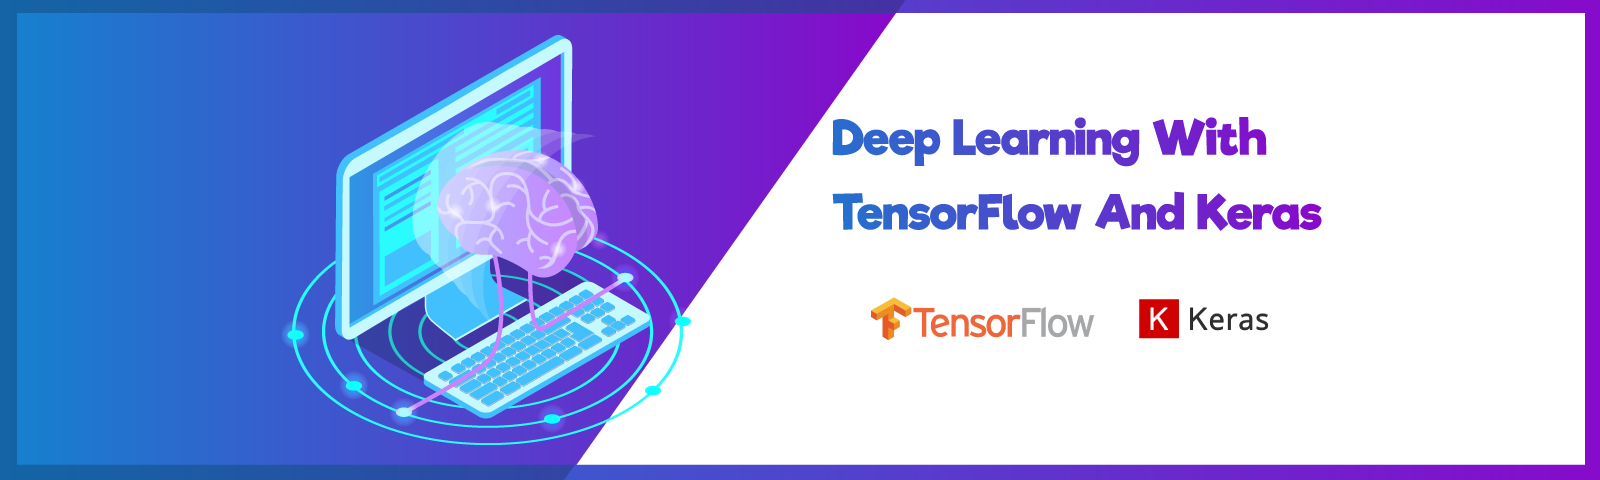 Intro to Deep Learning with Tensorflow and Keras